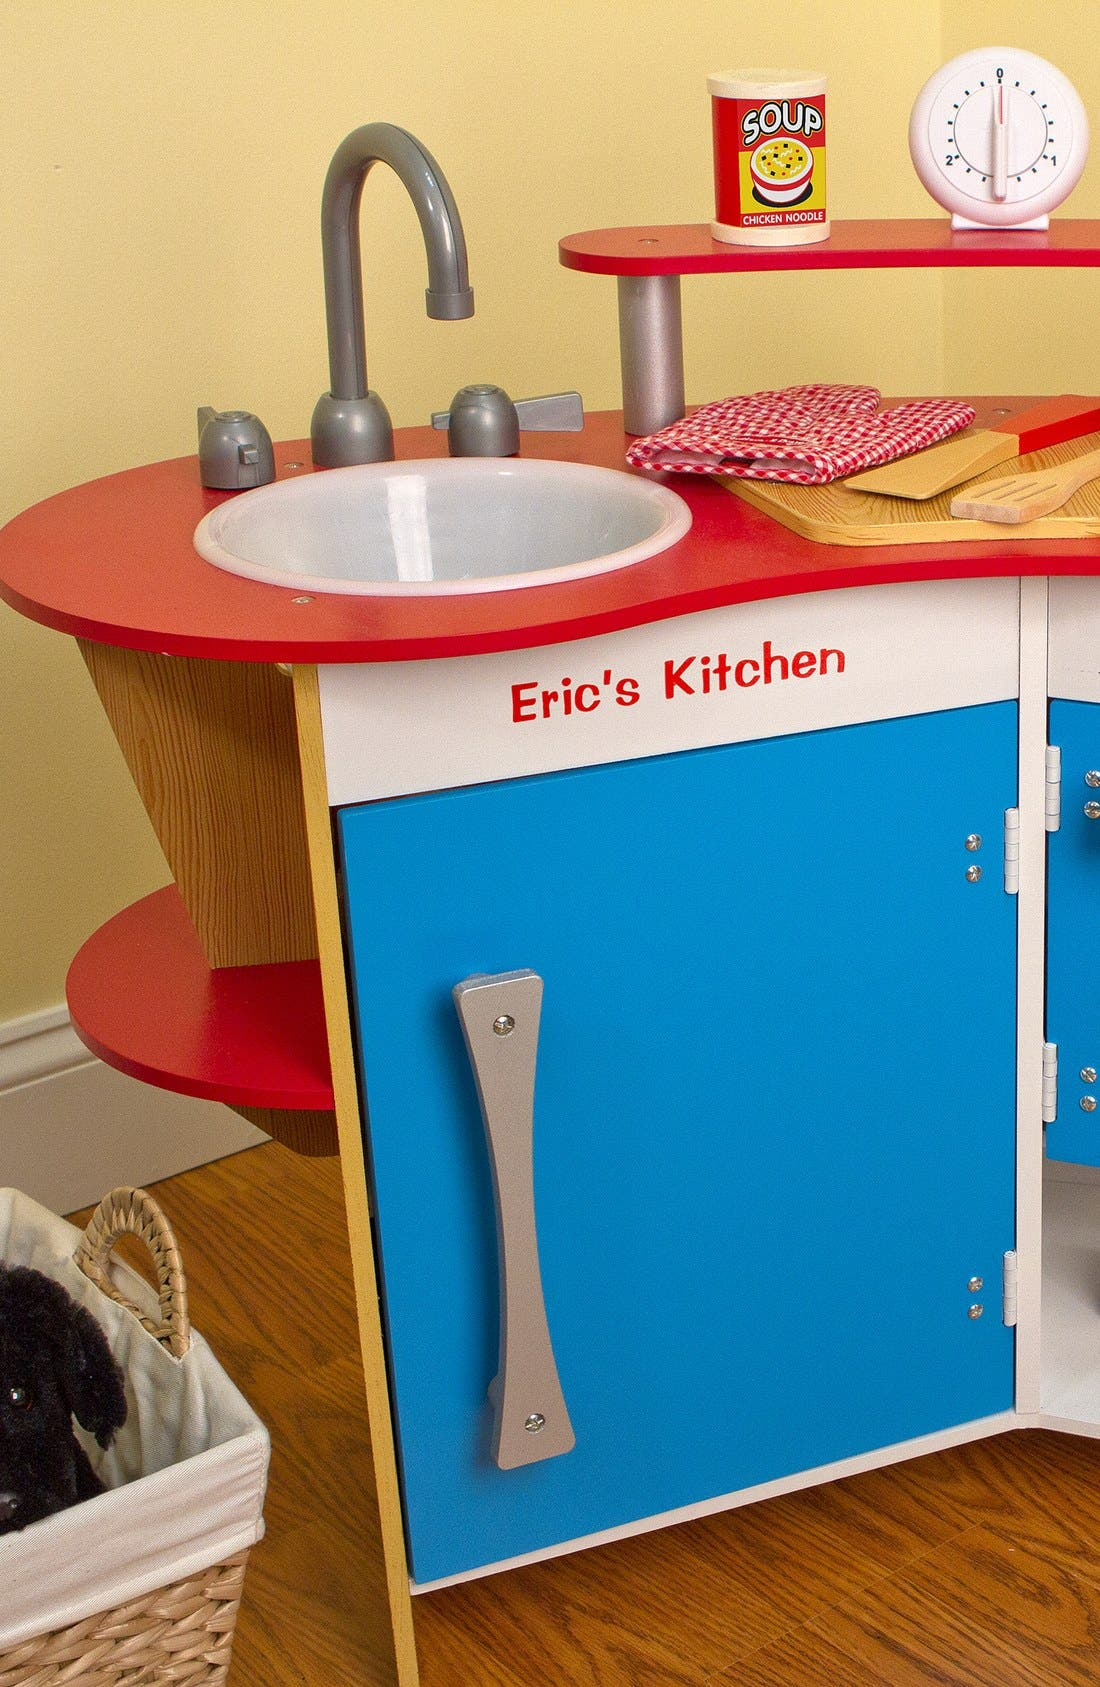 'Cook's Corner' Personalized Kitchen,                             Main thumbnail 1, color,                             Red